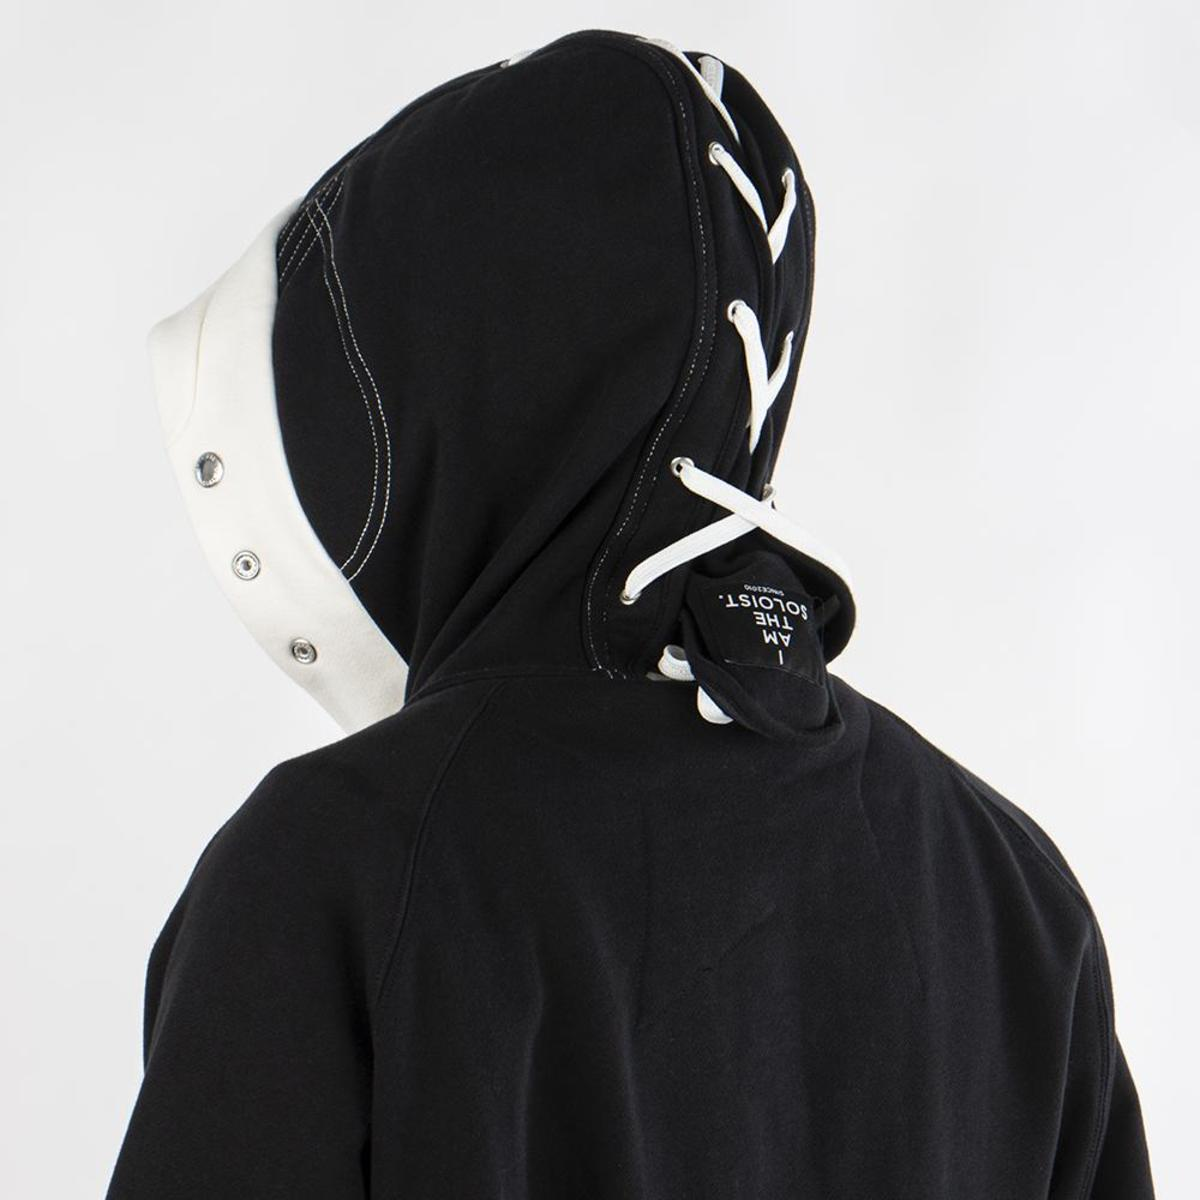 23ea33e4d Converse x The Soloist Full Zip Hoodie - Black